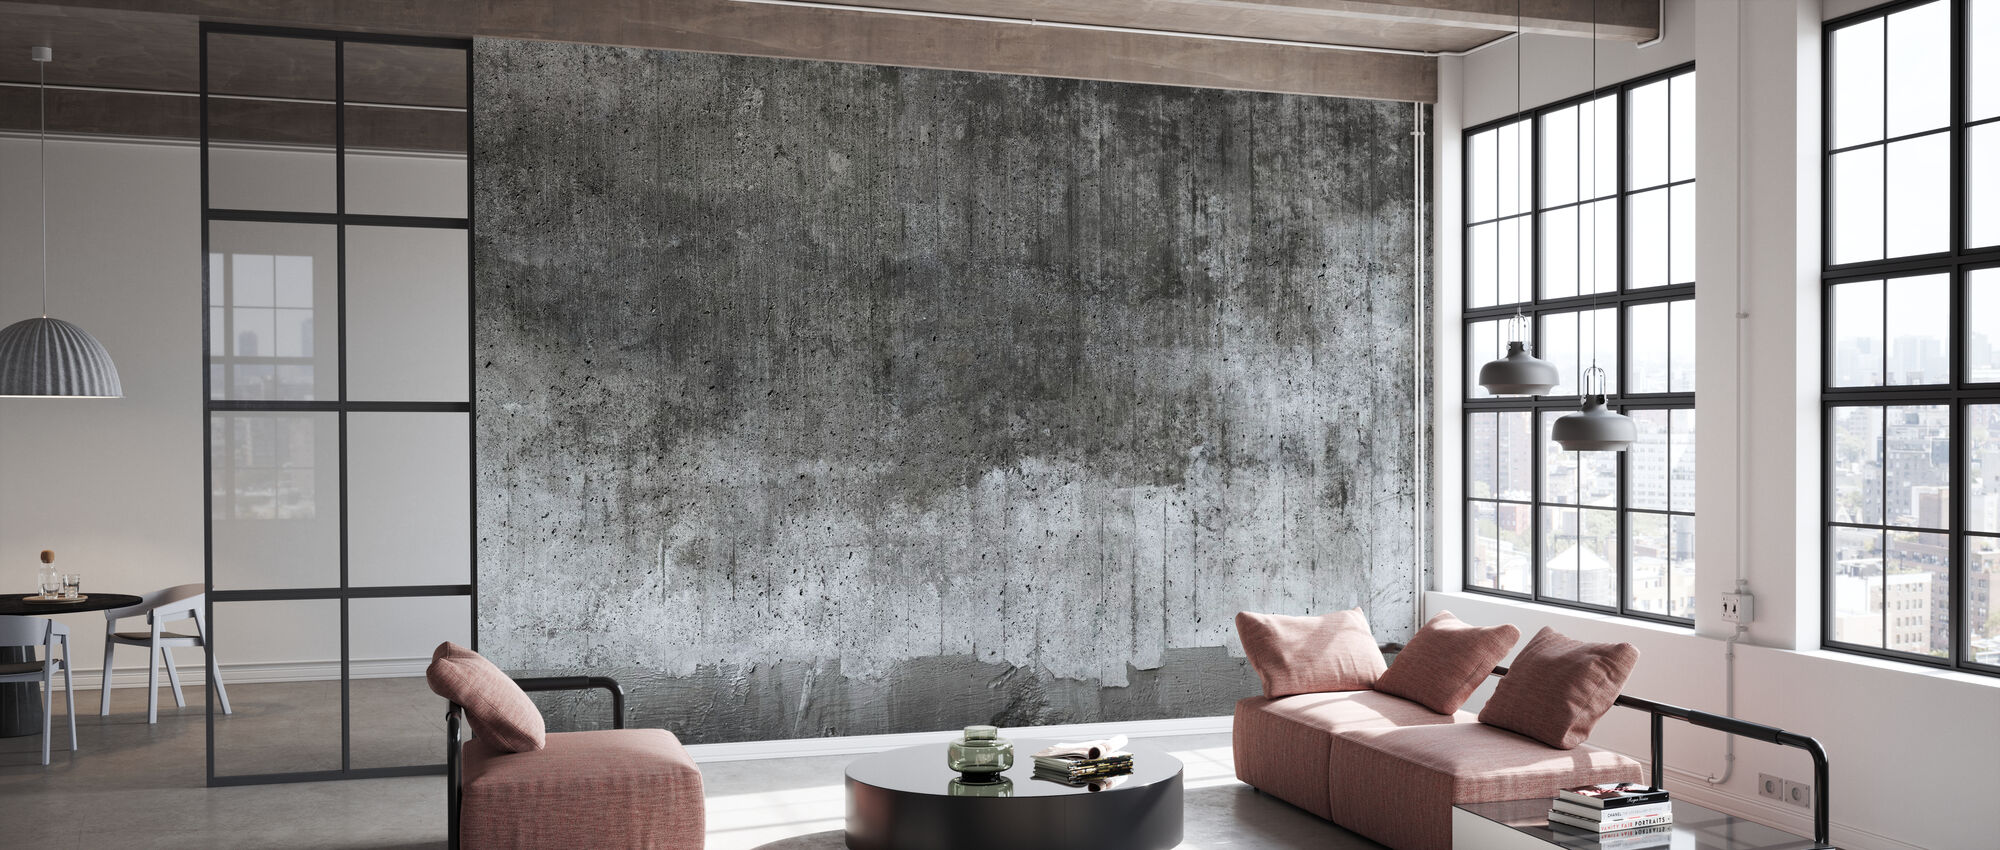 Rough Concrete Wall - Wallpaper - Office